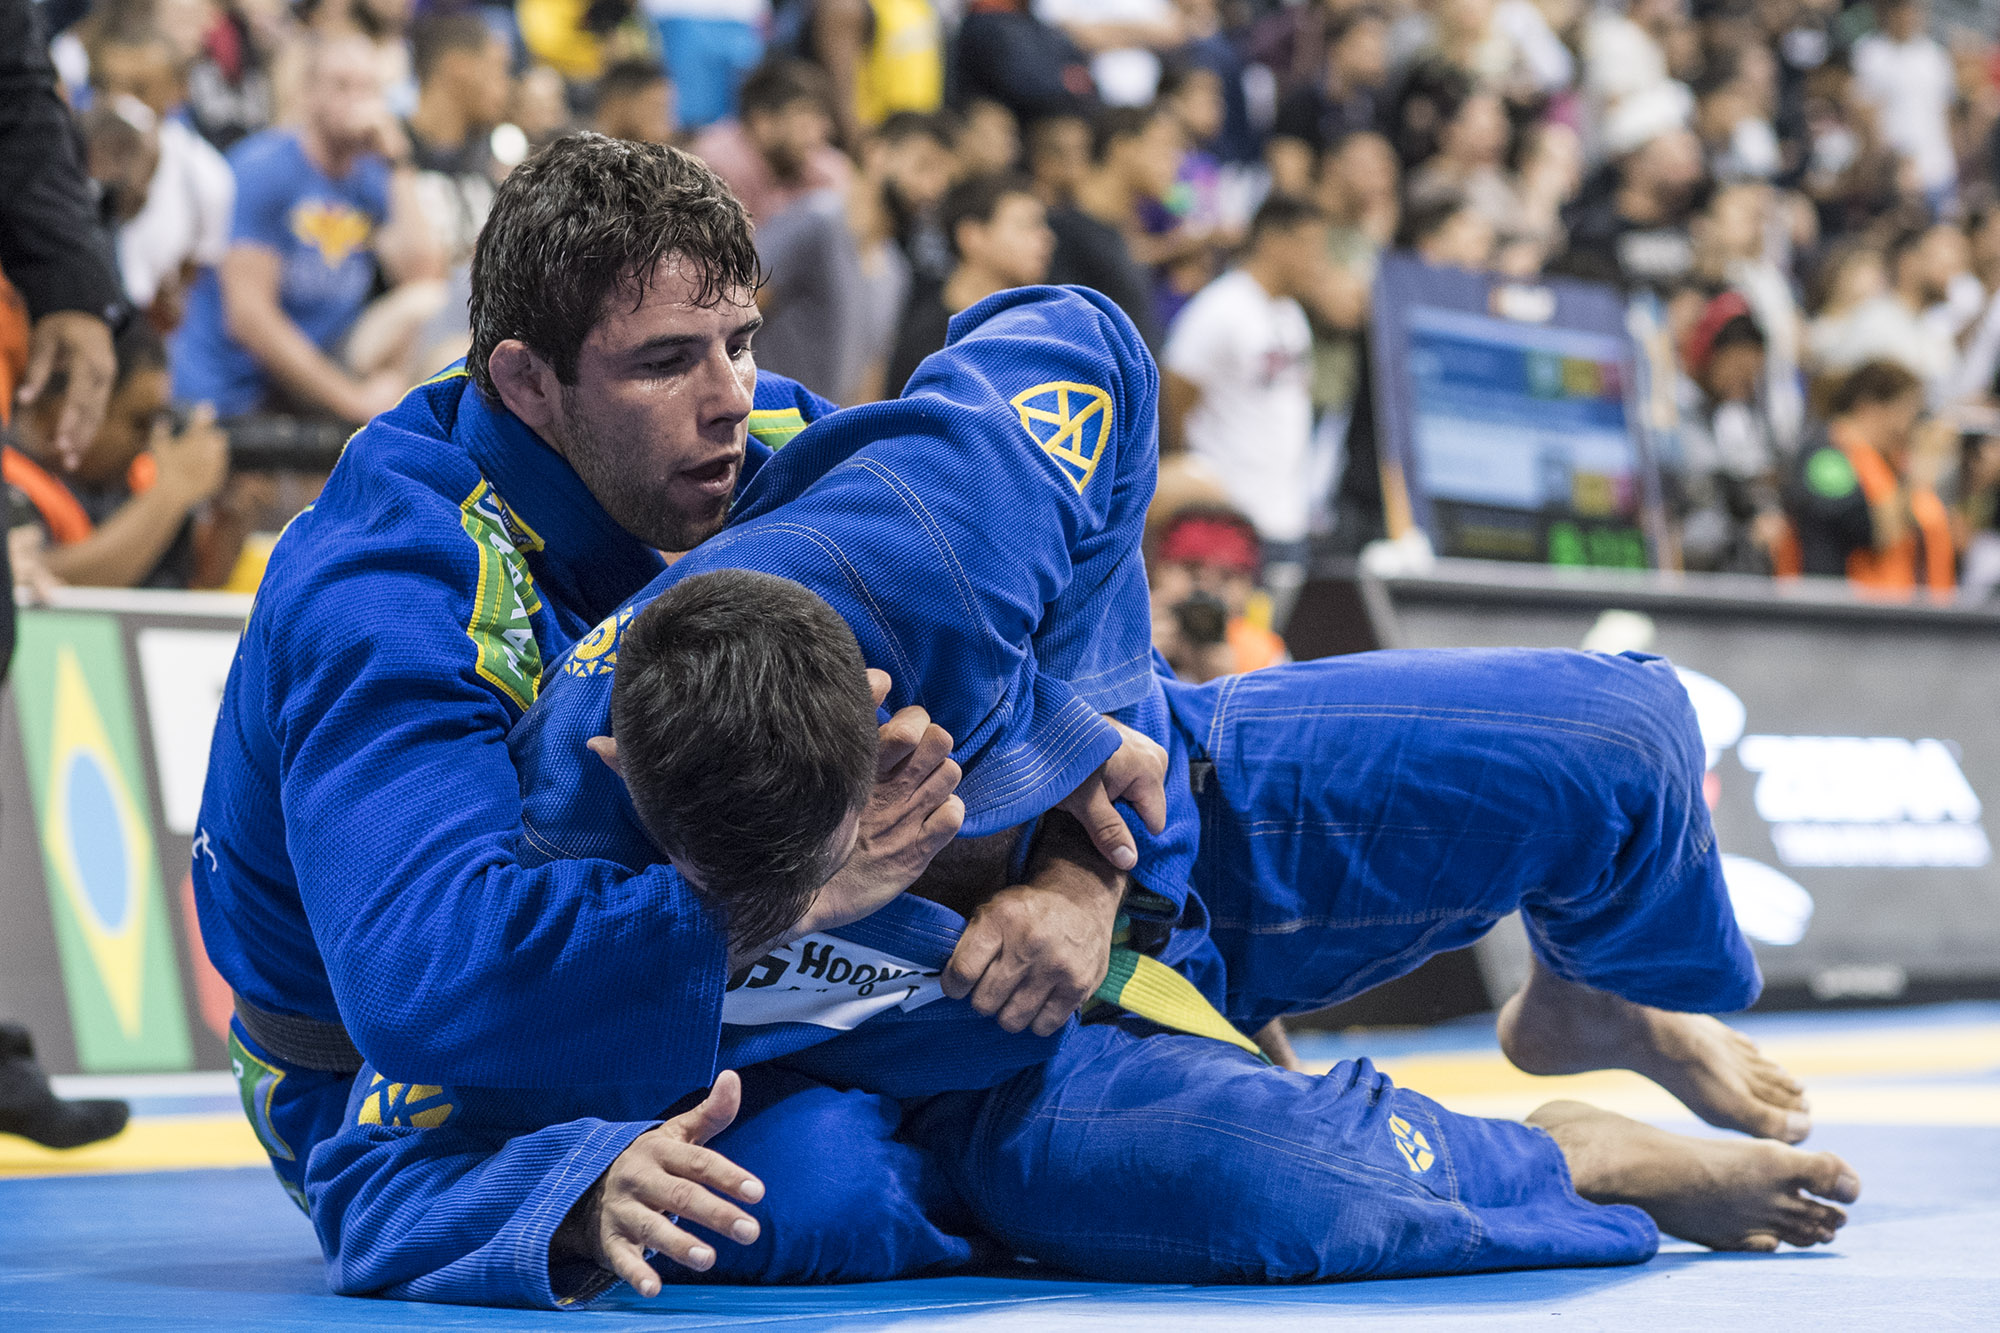 Marcus Buchecha competing during the BJJ Worlds 2016